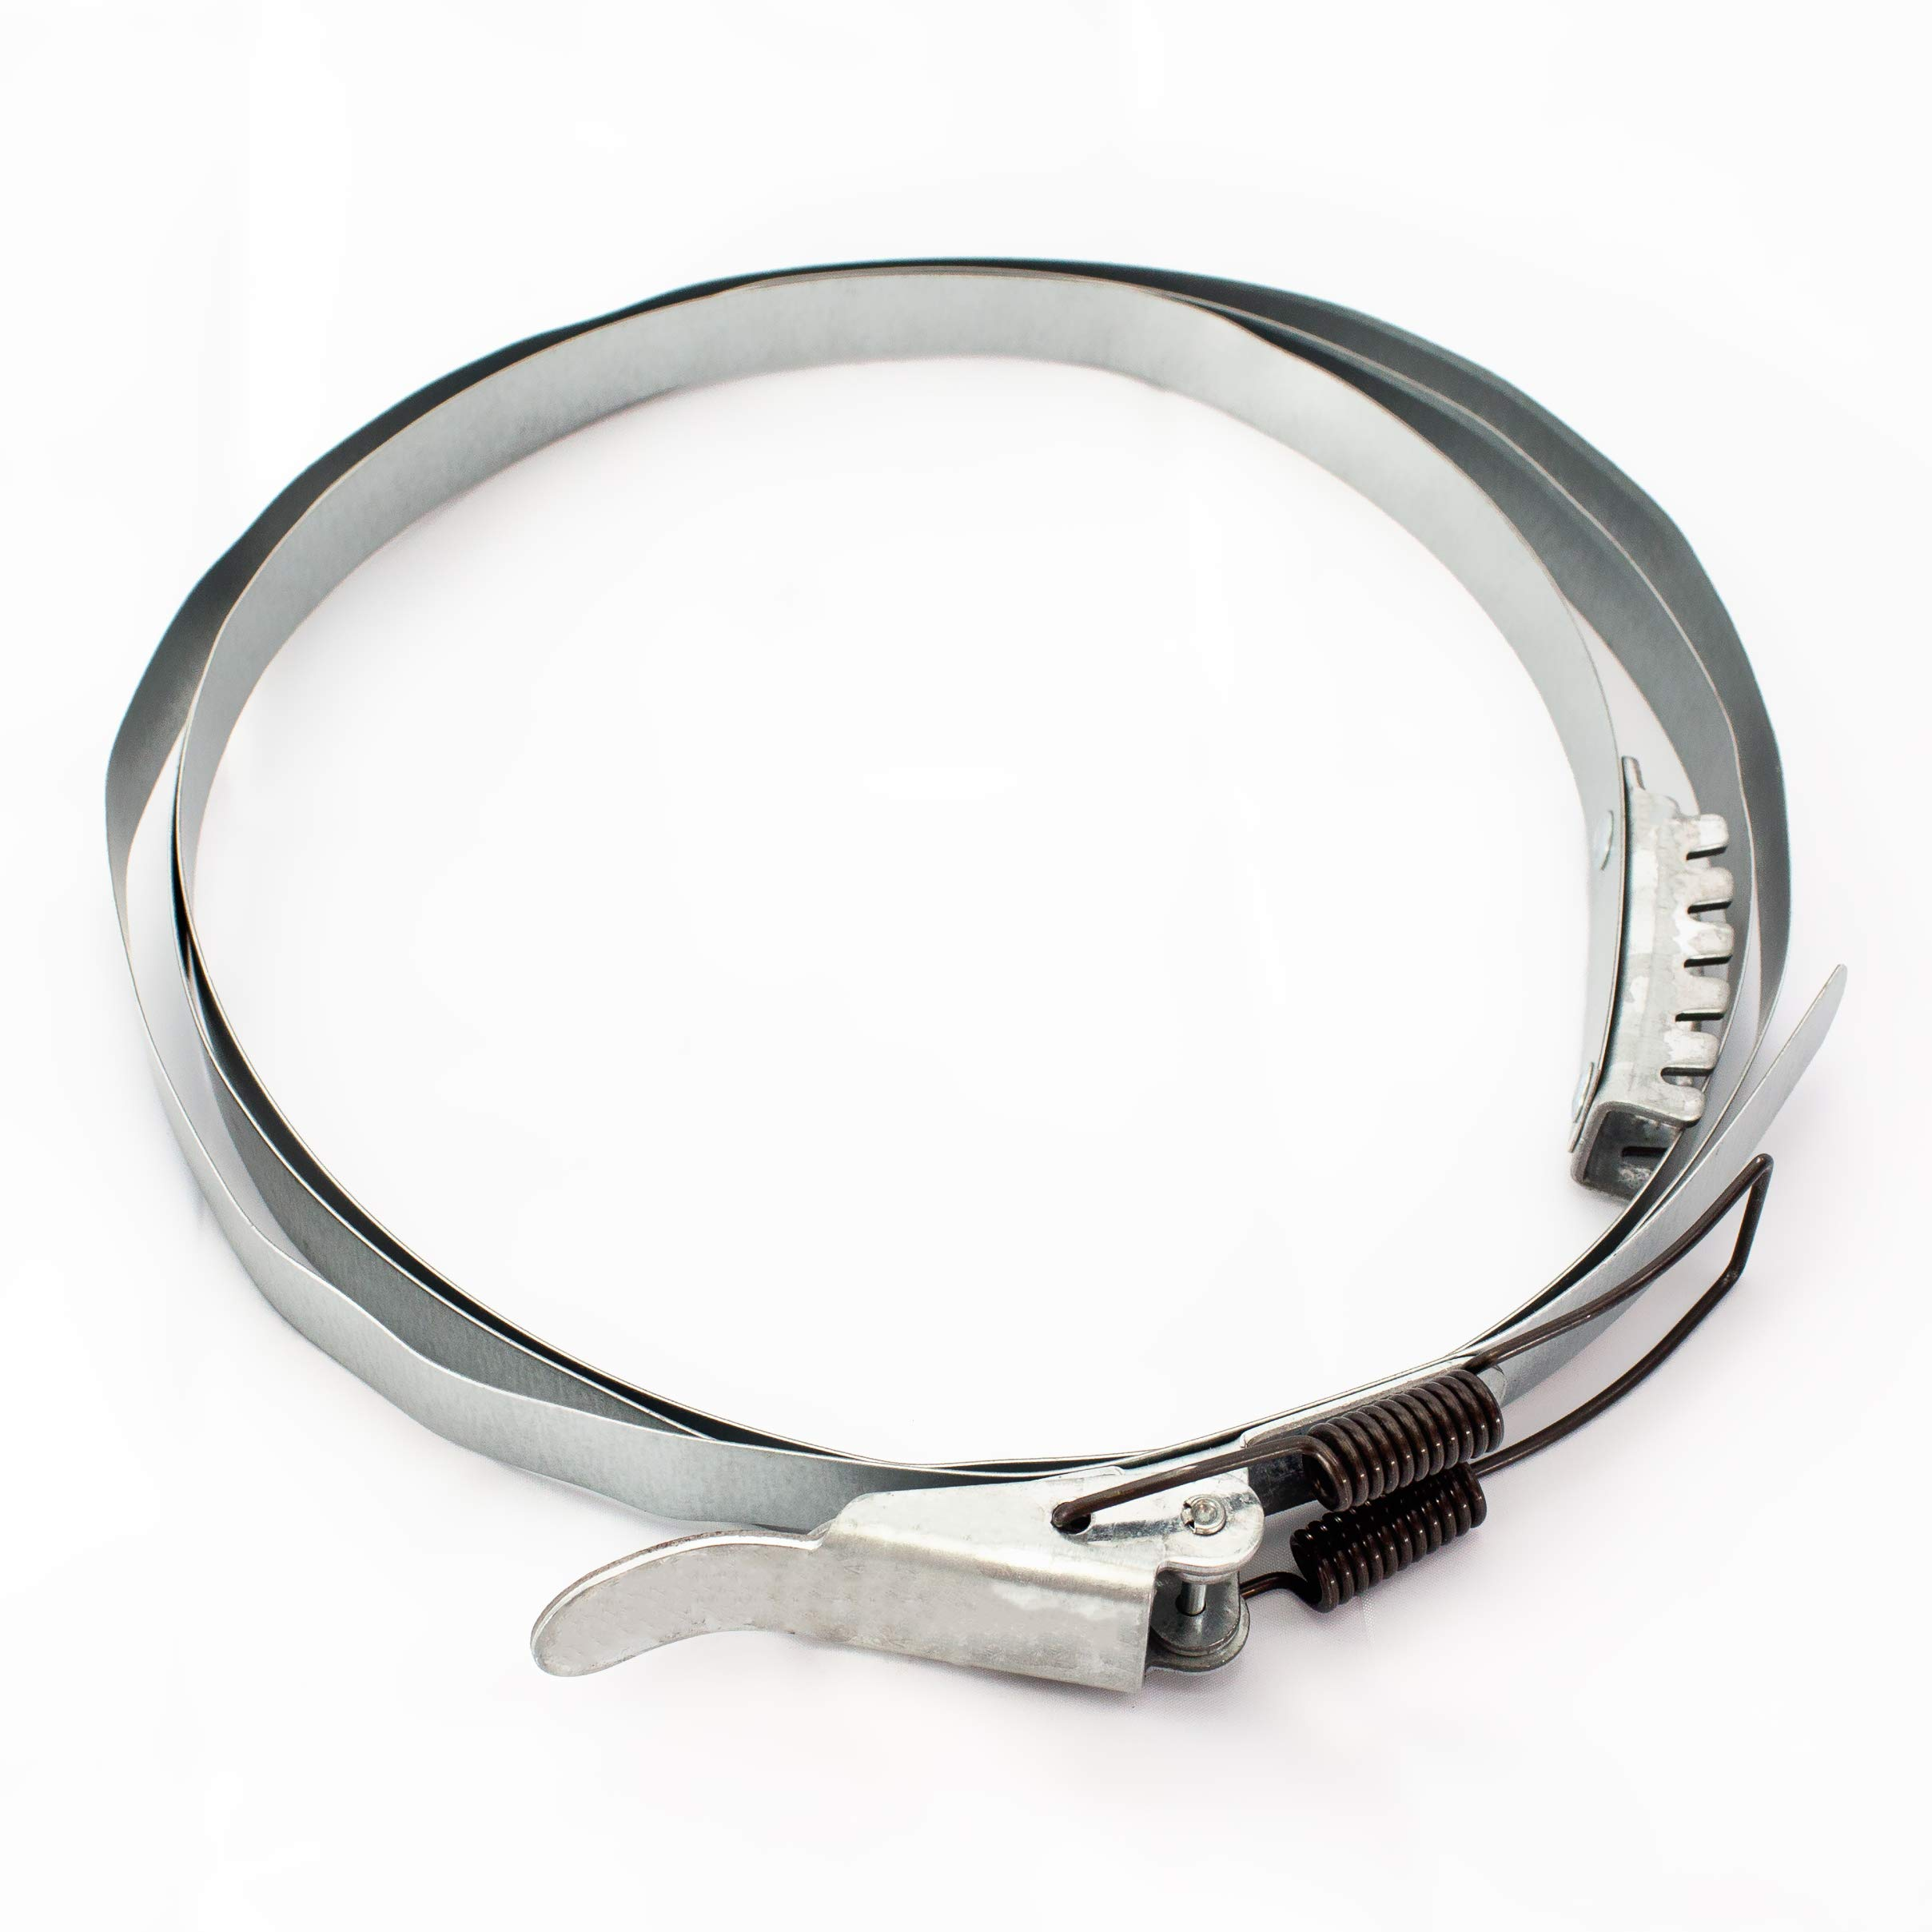 POWERTEC 71214 Band Clamp for Dust Collector, 14-Inch (370mm)